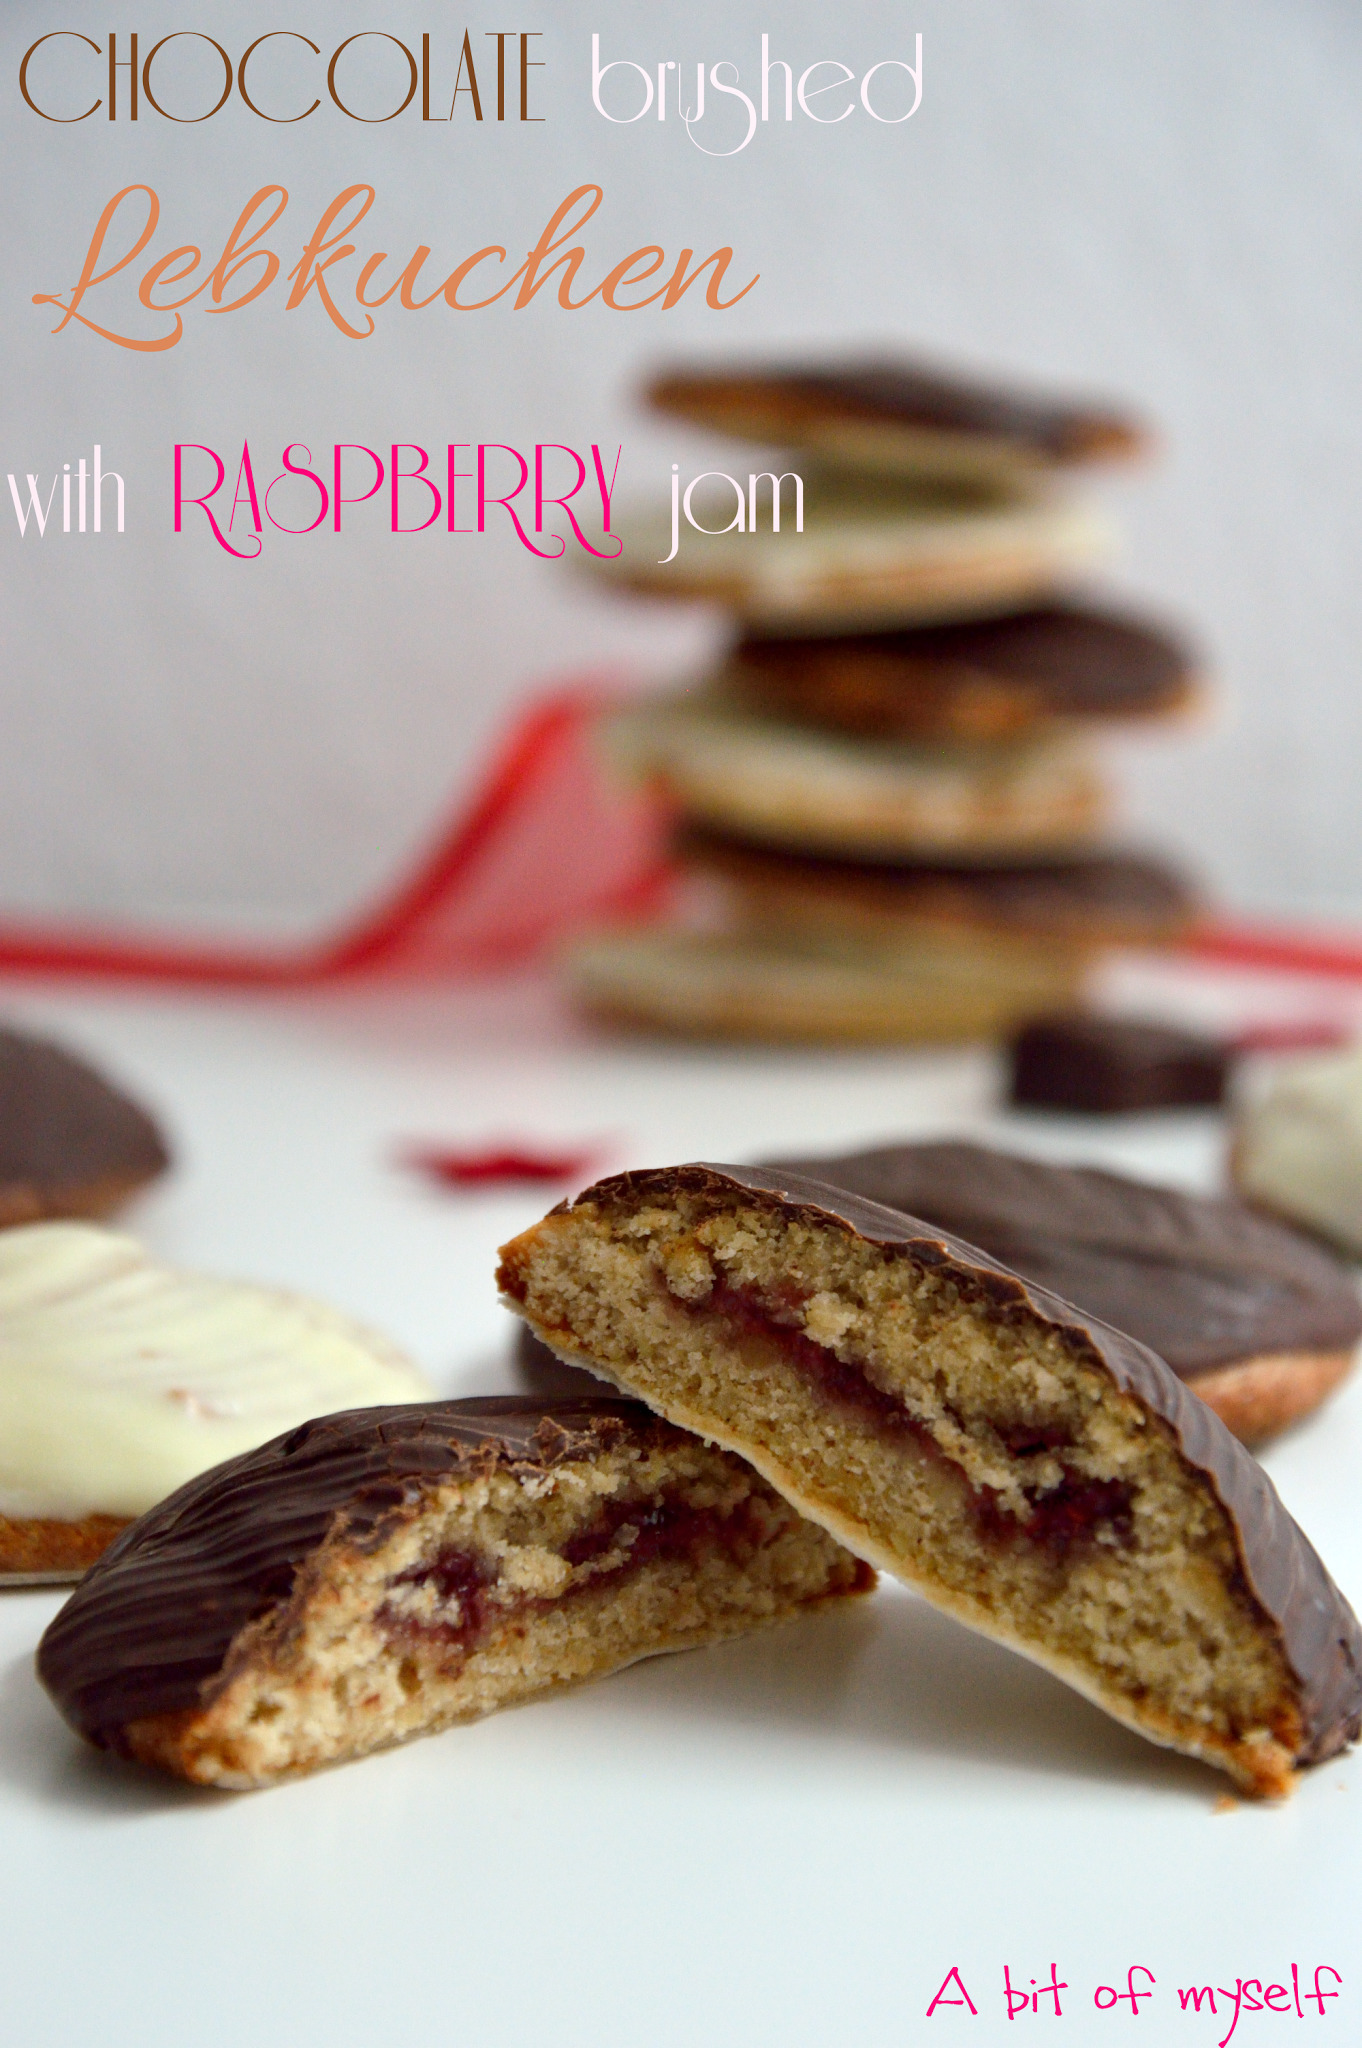 Chocolate brushed lebkuchen with raspberry jam